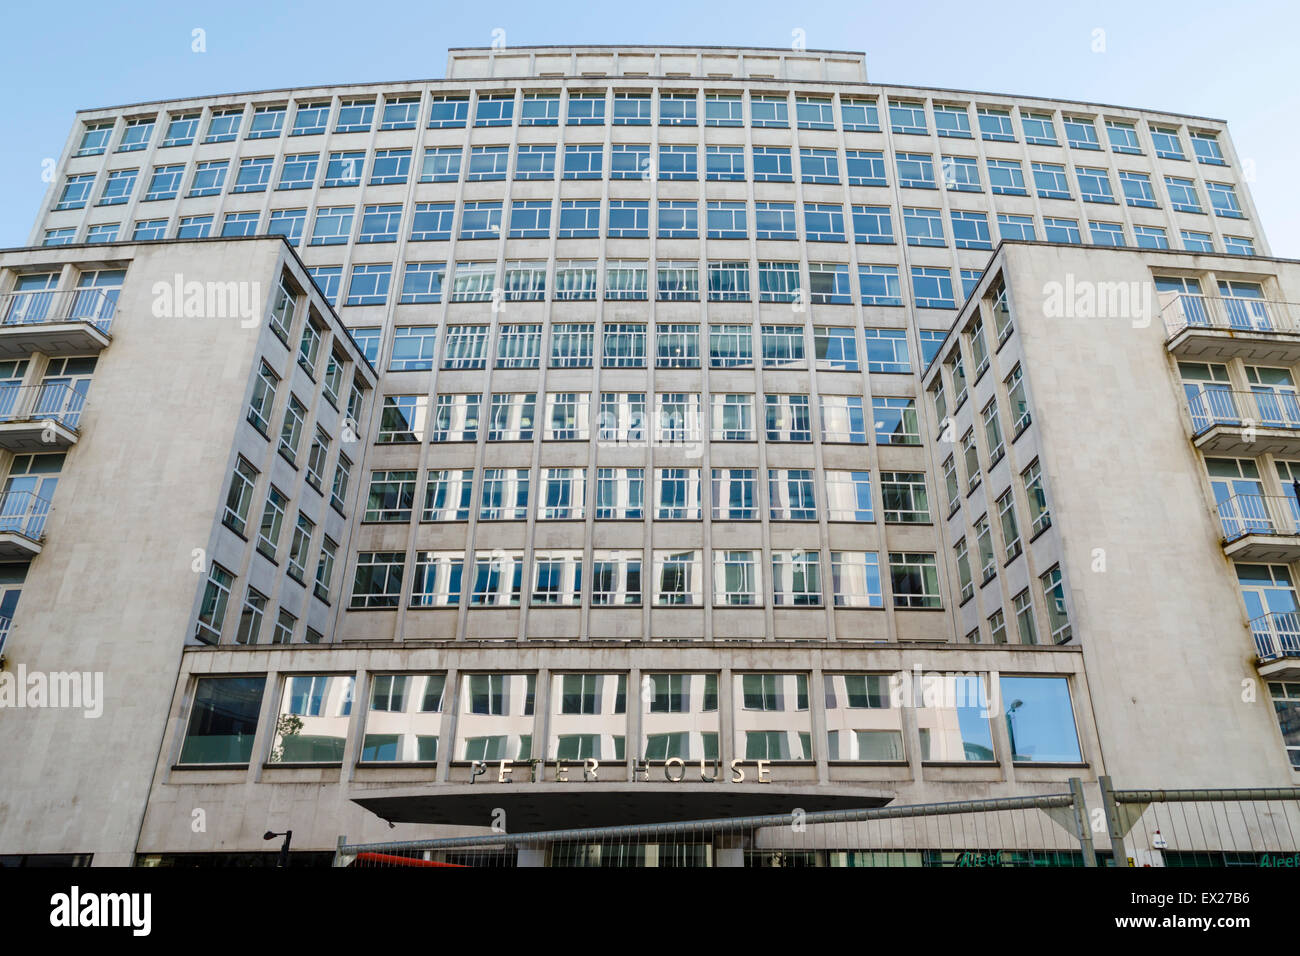 Peter House, Manchester, a large postwar office development designed by Amsell & Bailey, 1958. - Stock Image